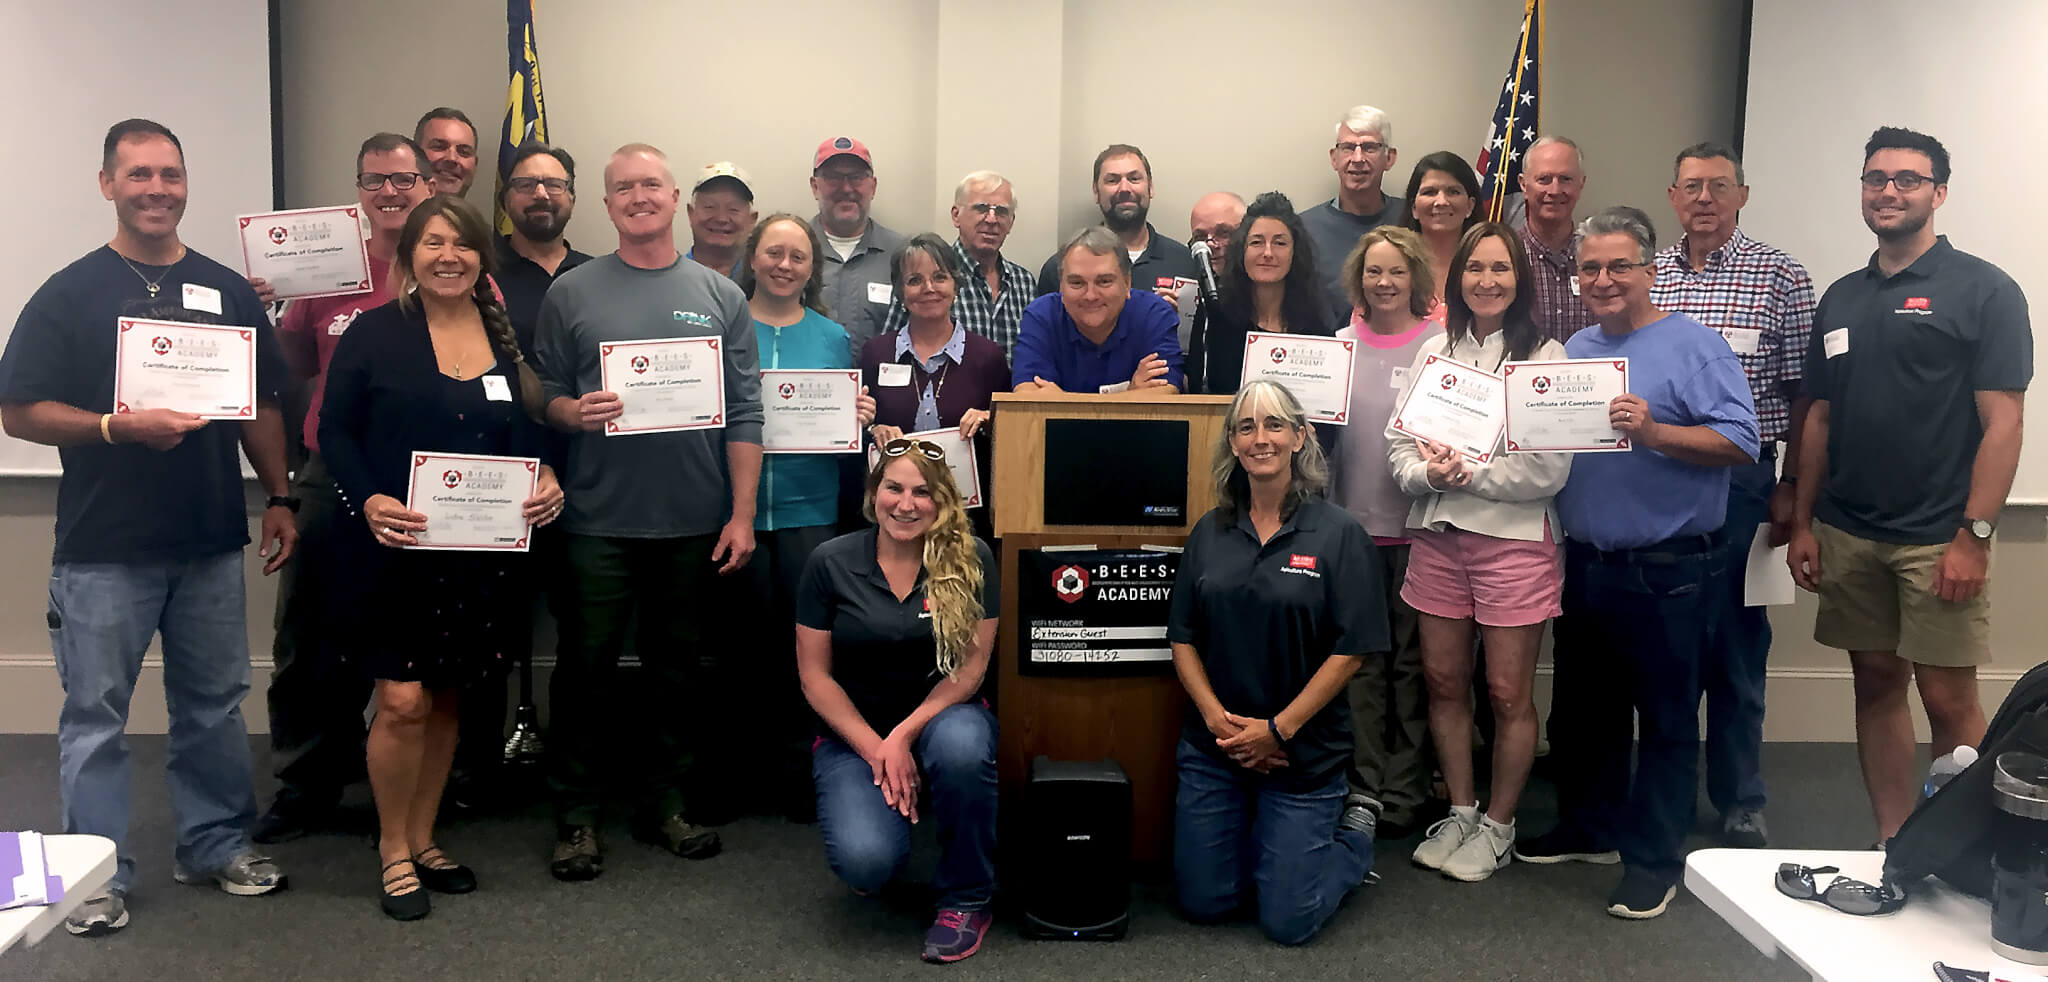 2019 Mountain BEES Academy Participants